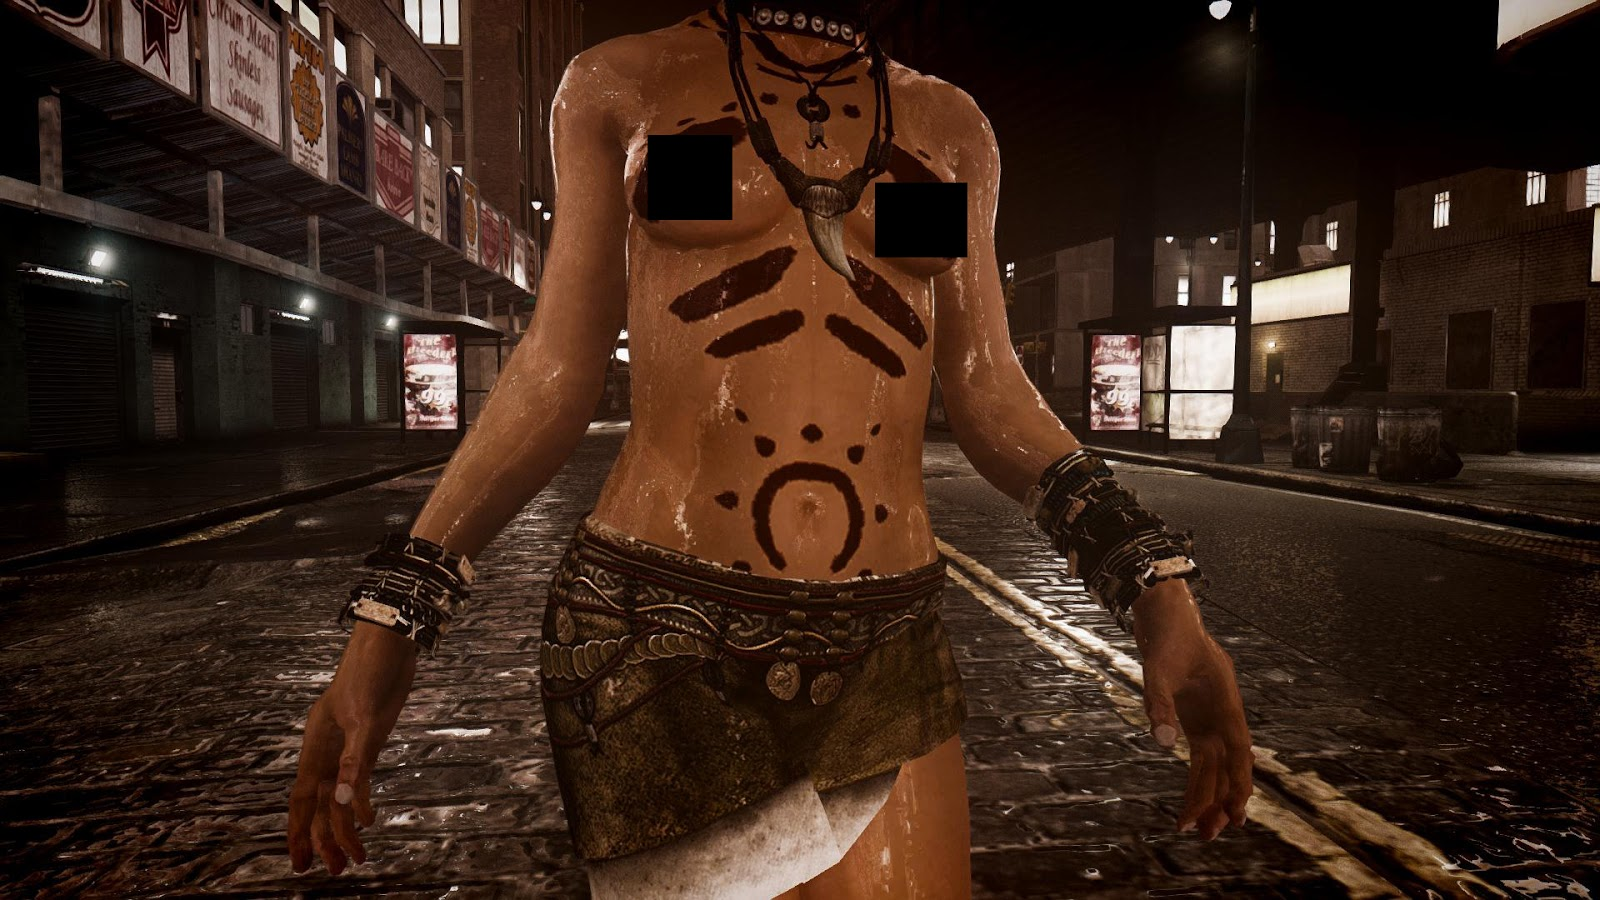 Far cry nude skin mods porncraft scene